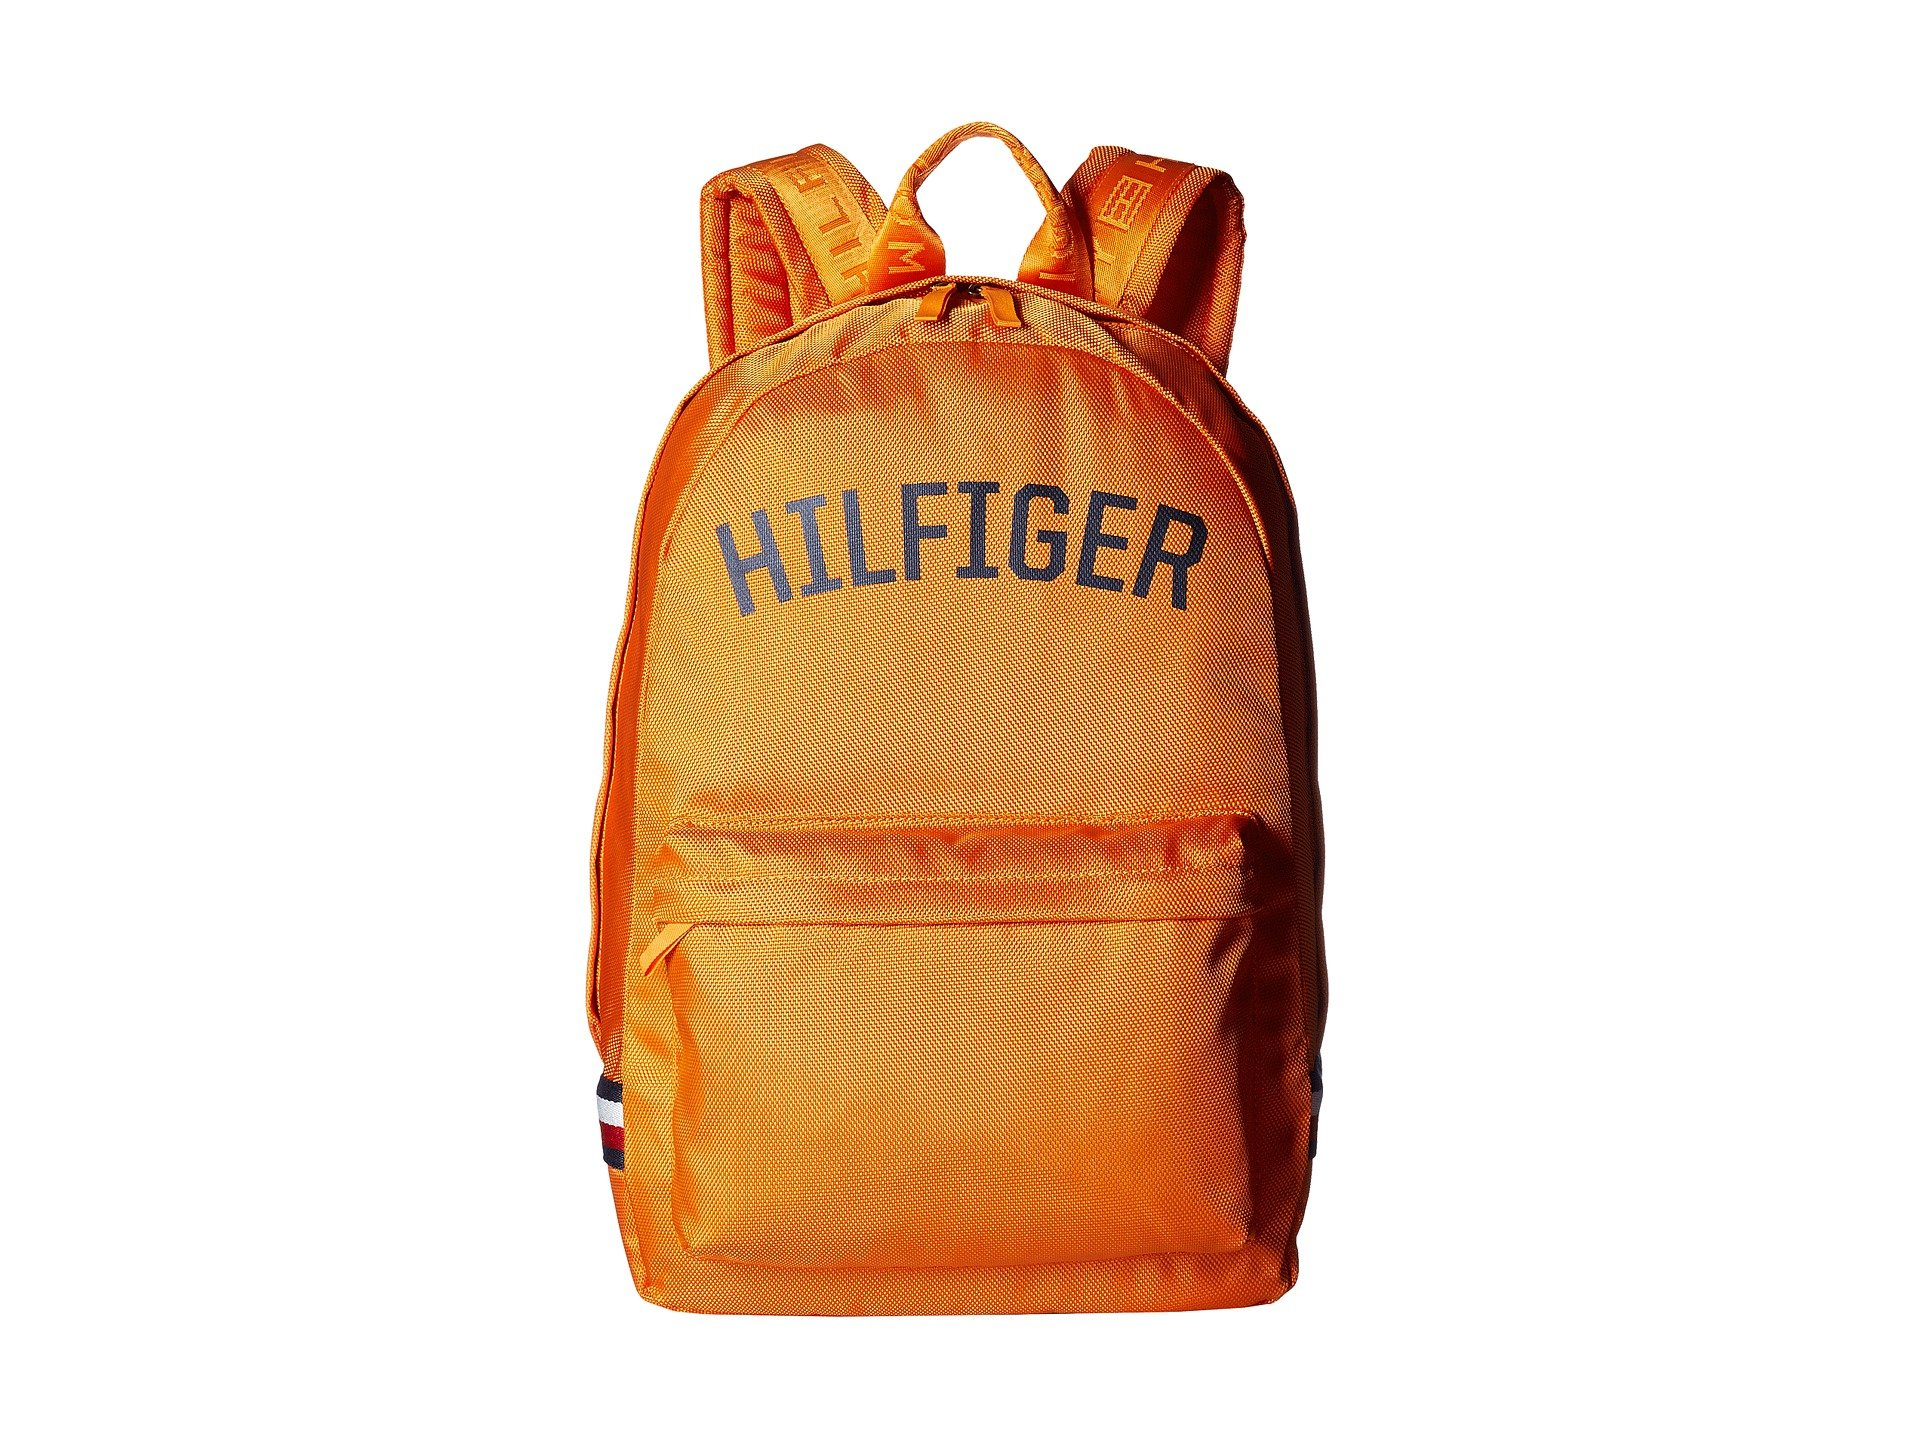 Morral para Hombre Tommy Hilfiger Zachary Backpack Nylon  + Tommy Hilfiger en VeoyCompro.net